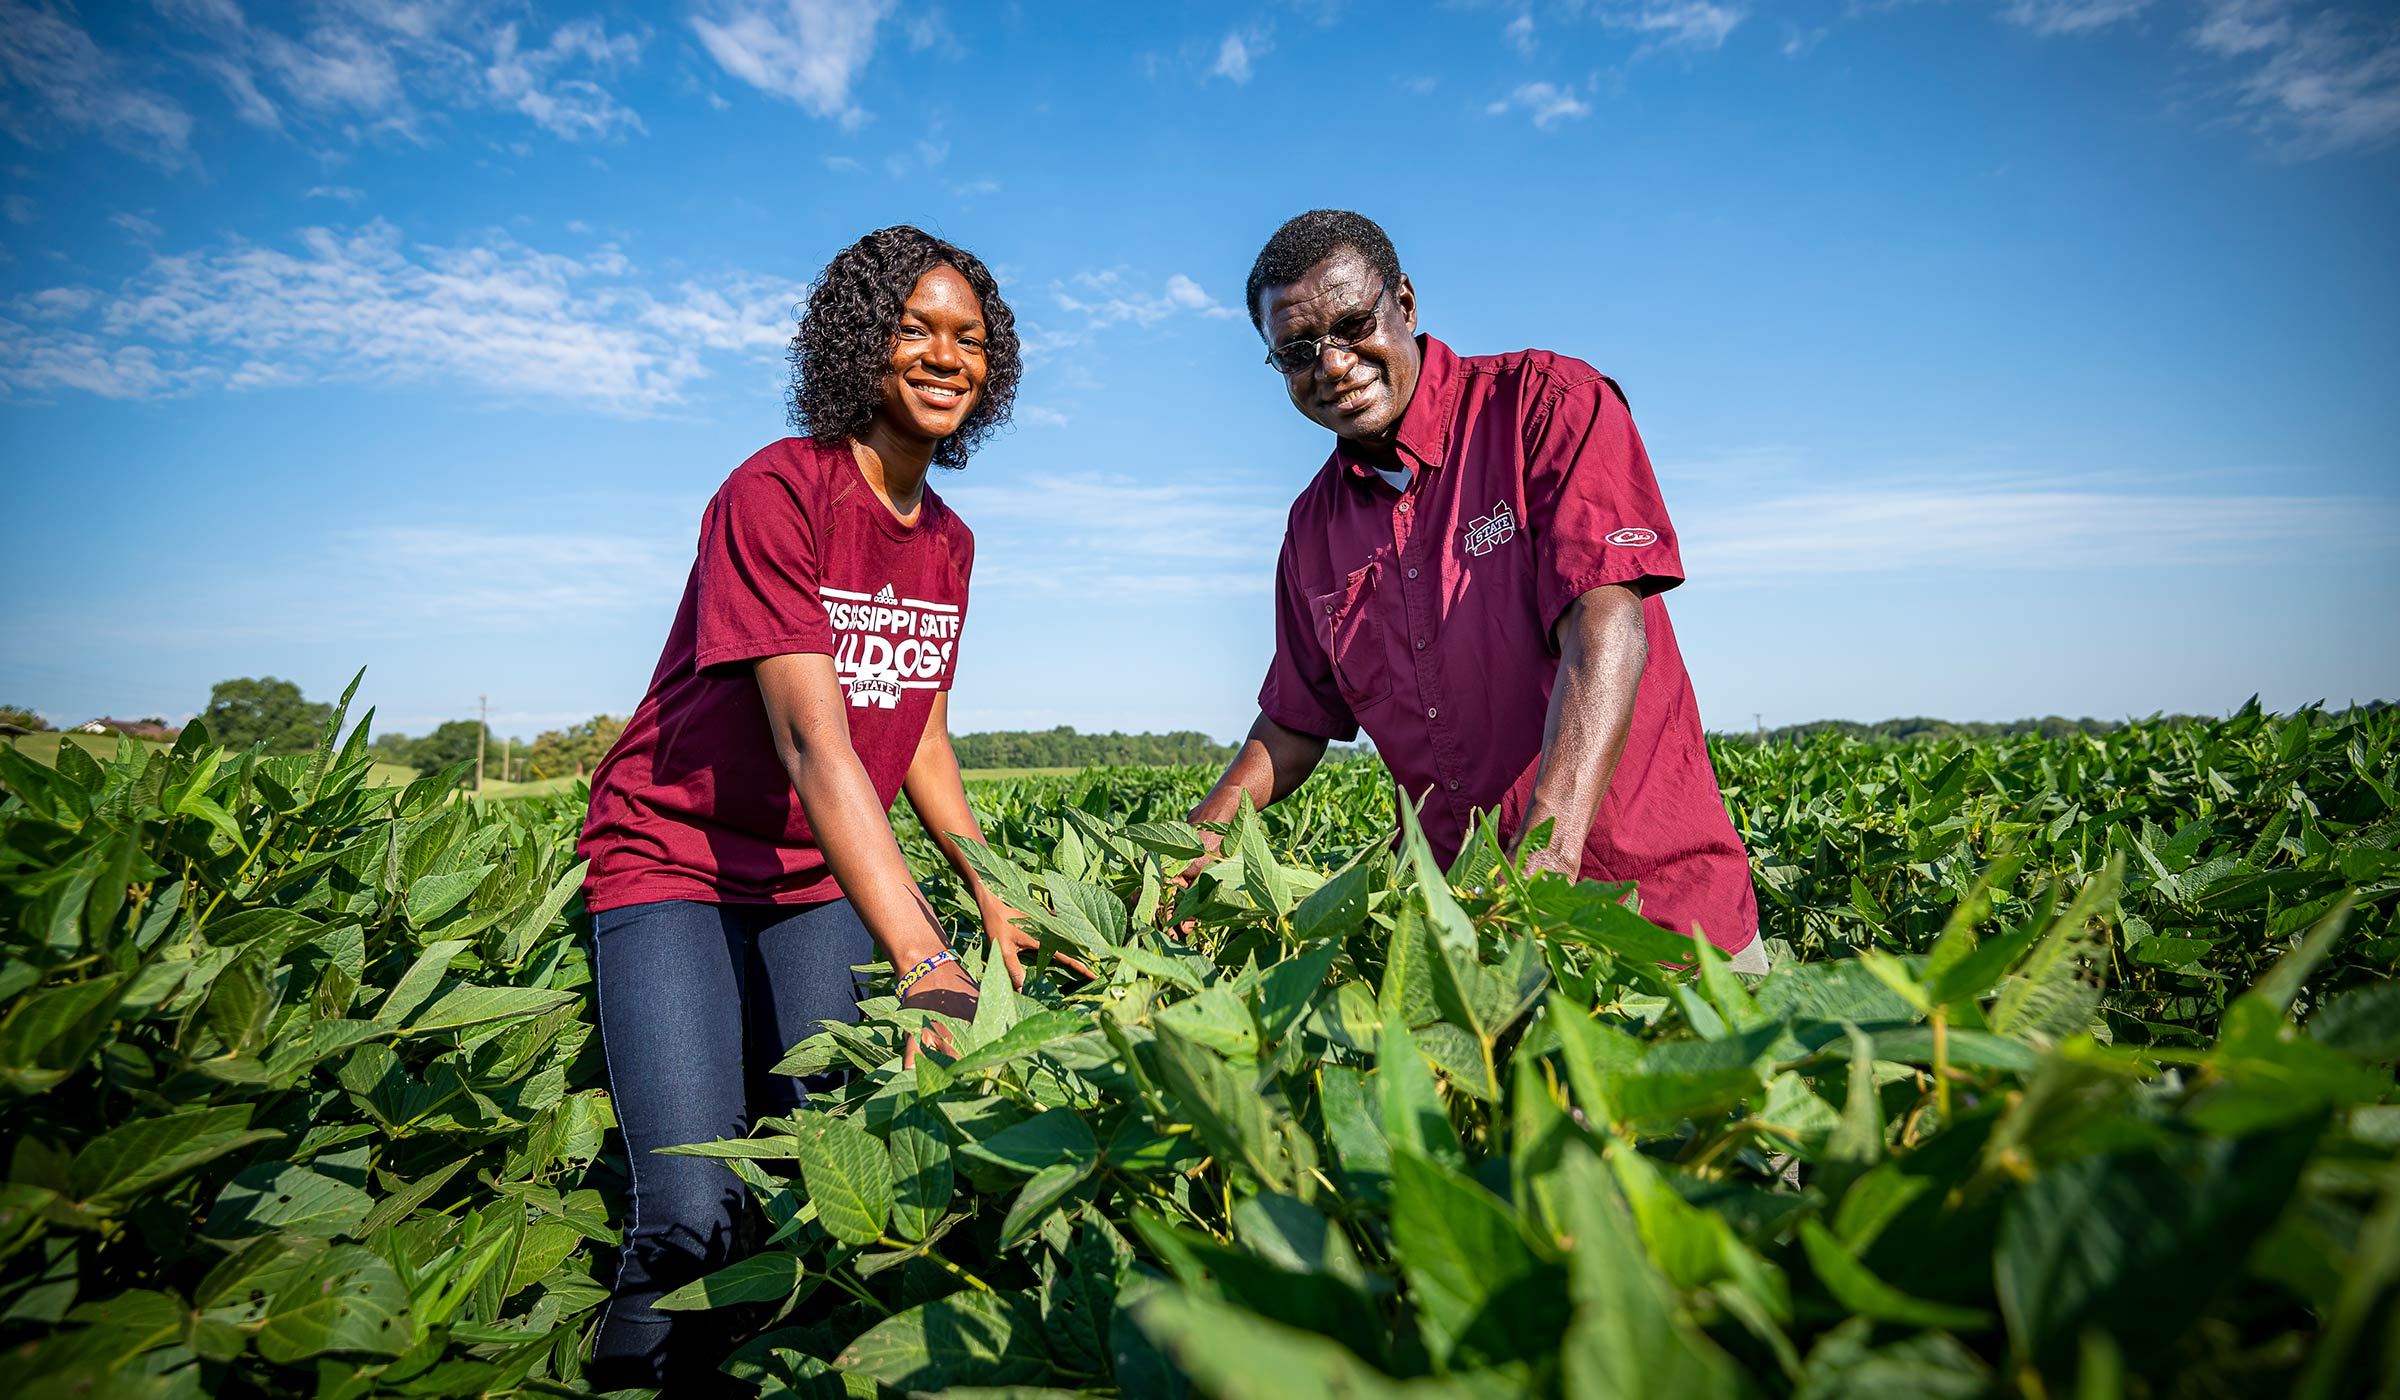 George Awuni and Urita Agana, pictured among a row of crops.